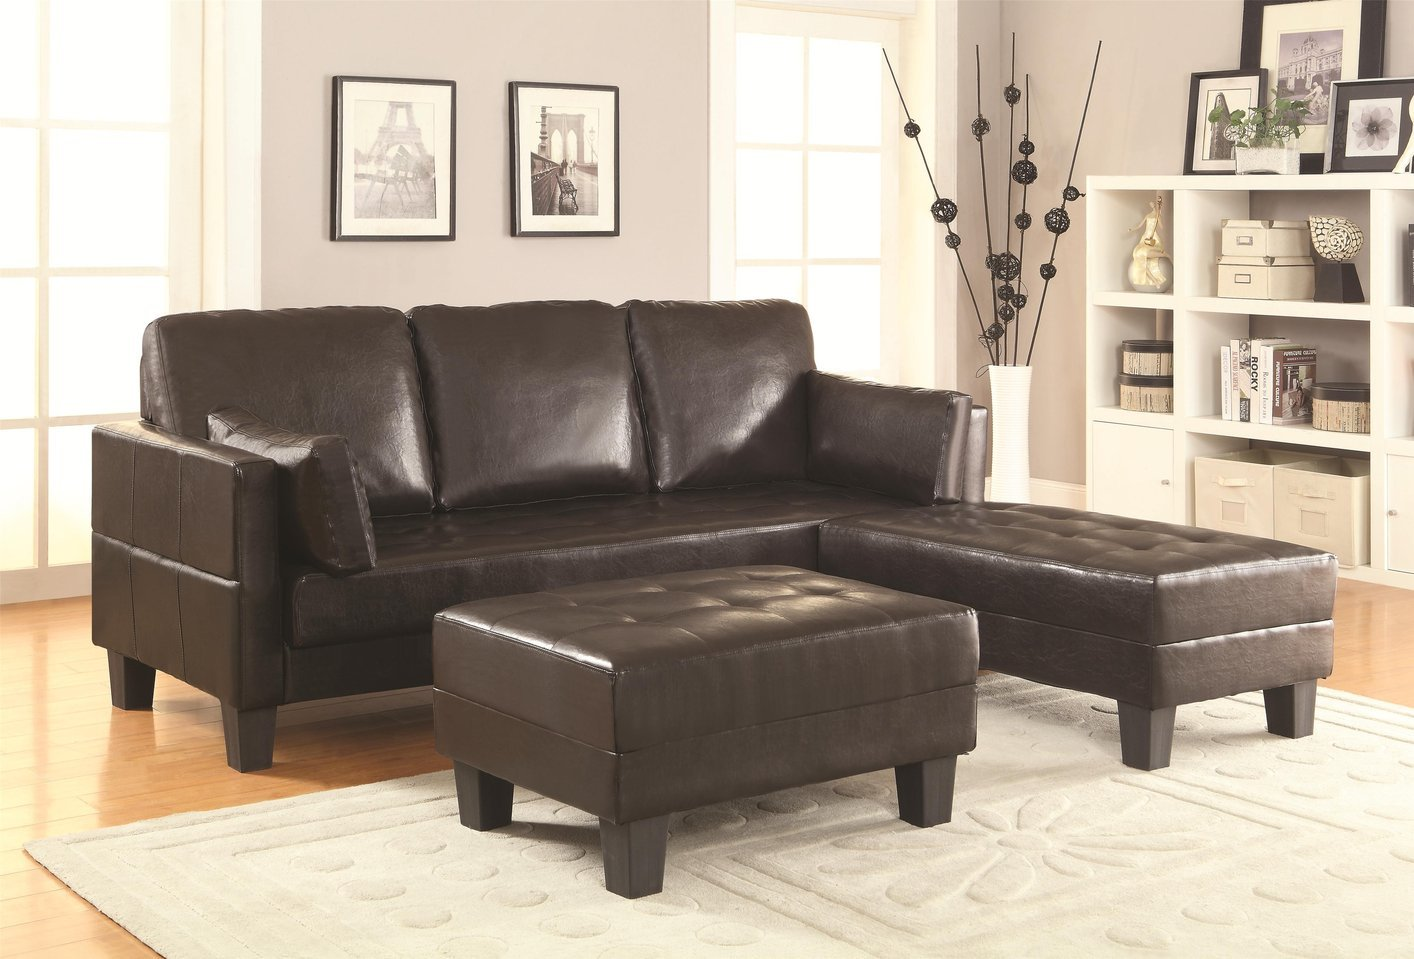 Coaster Brown Leather Sofa Bed and Ottoman Set Steal A Sofa Furniture Outlet Los Angeles CA